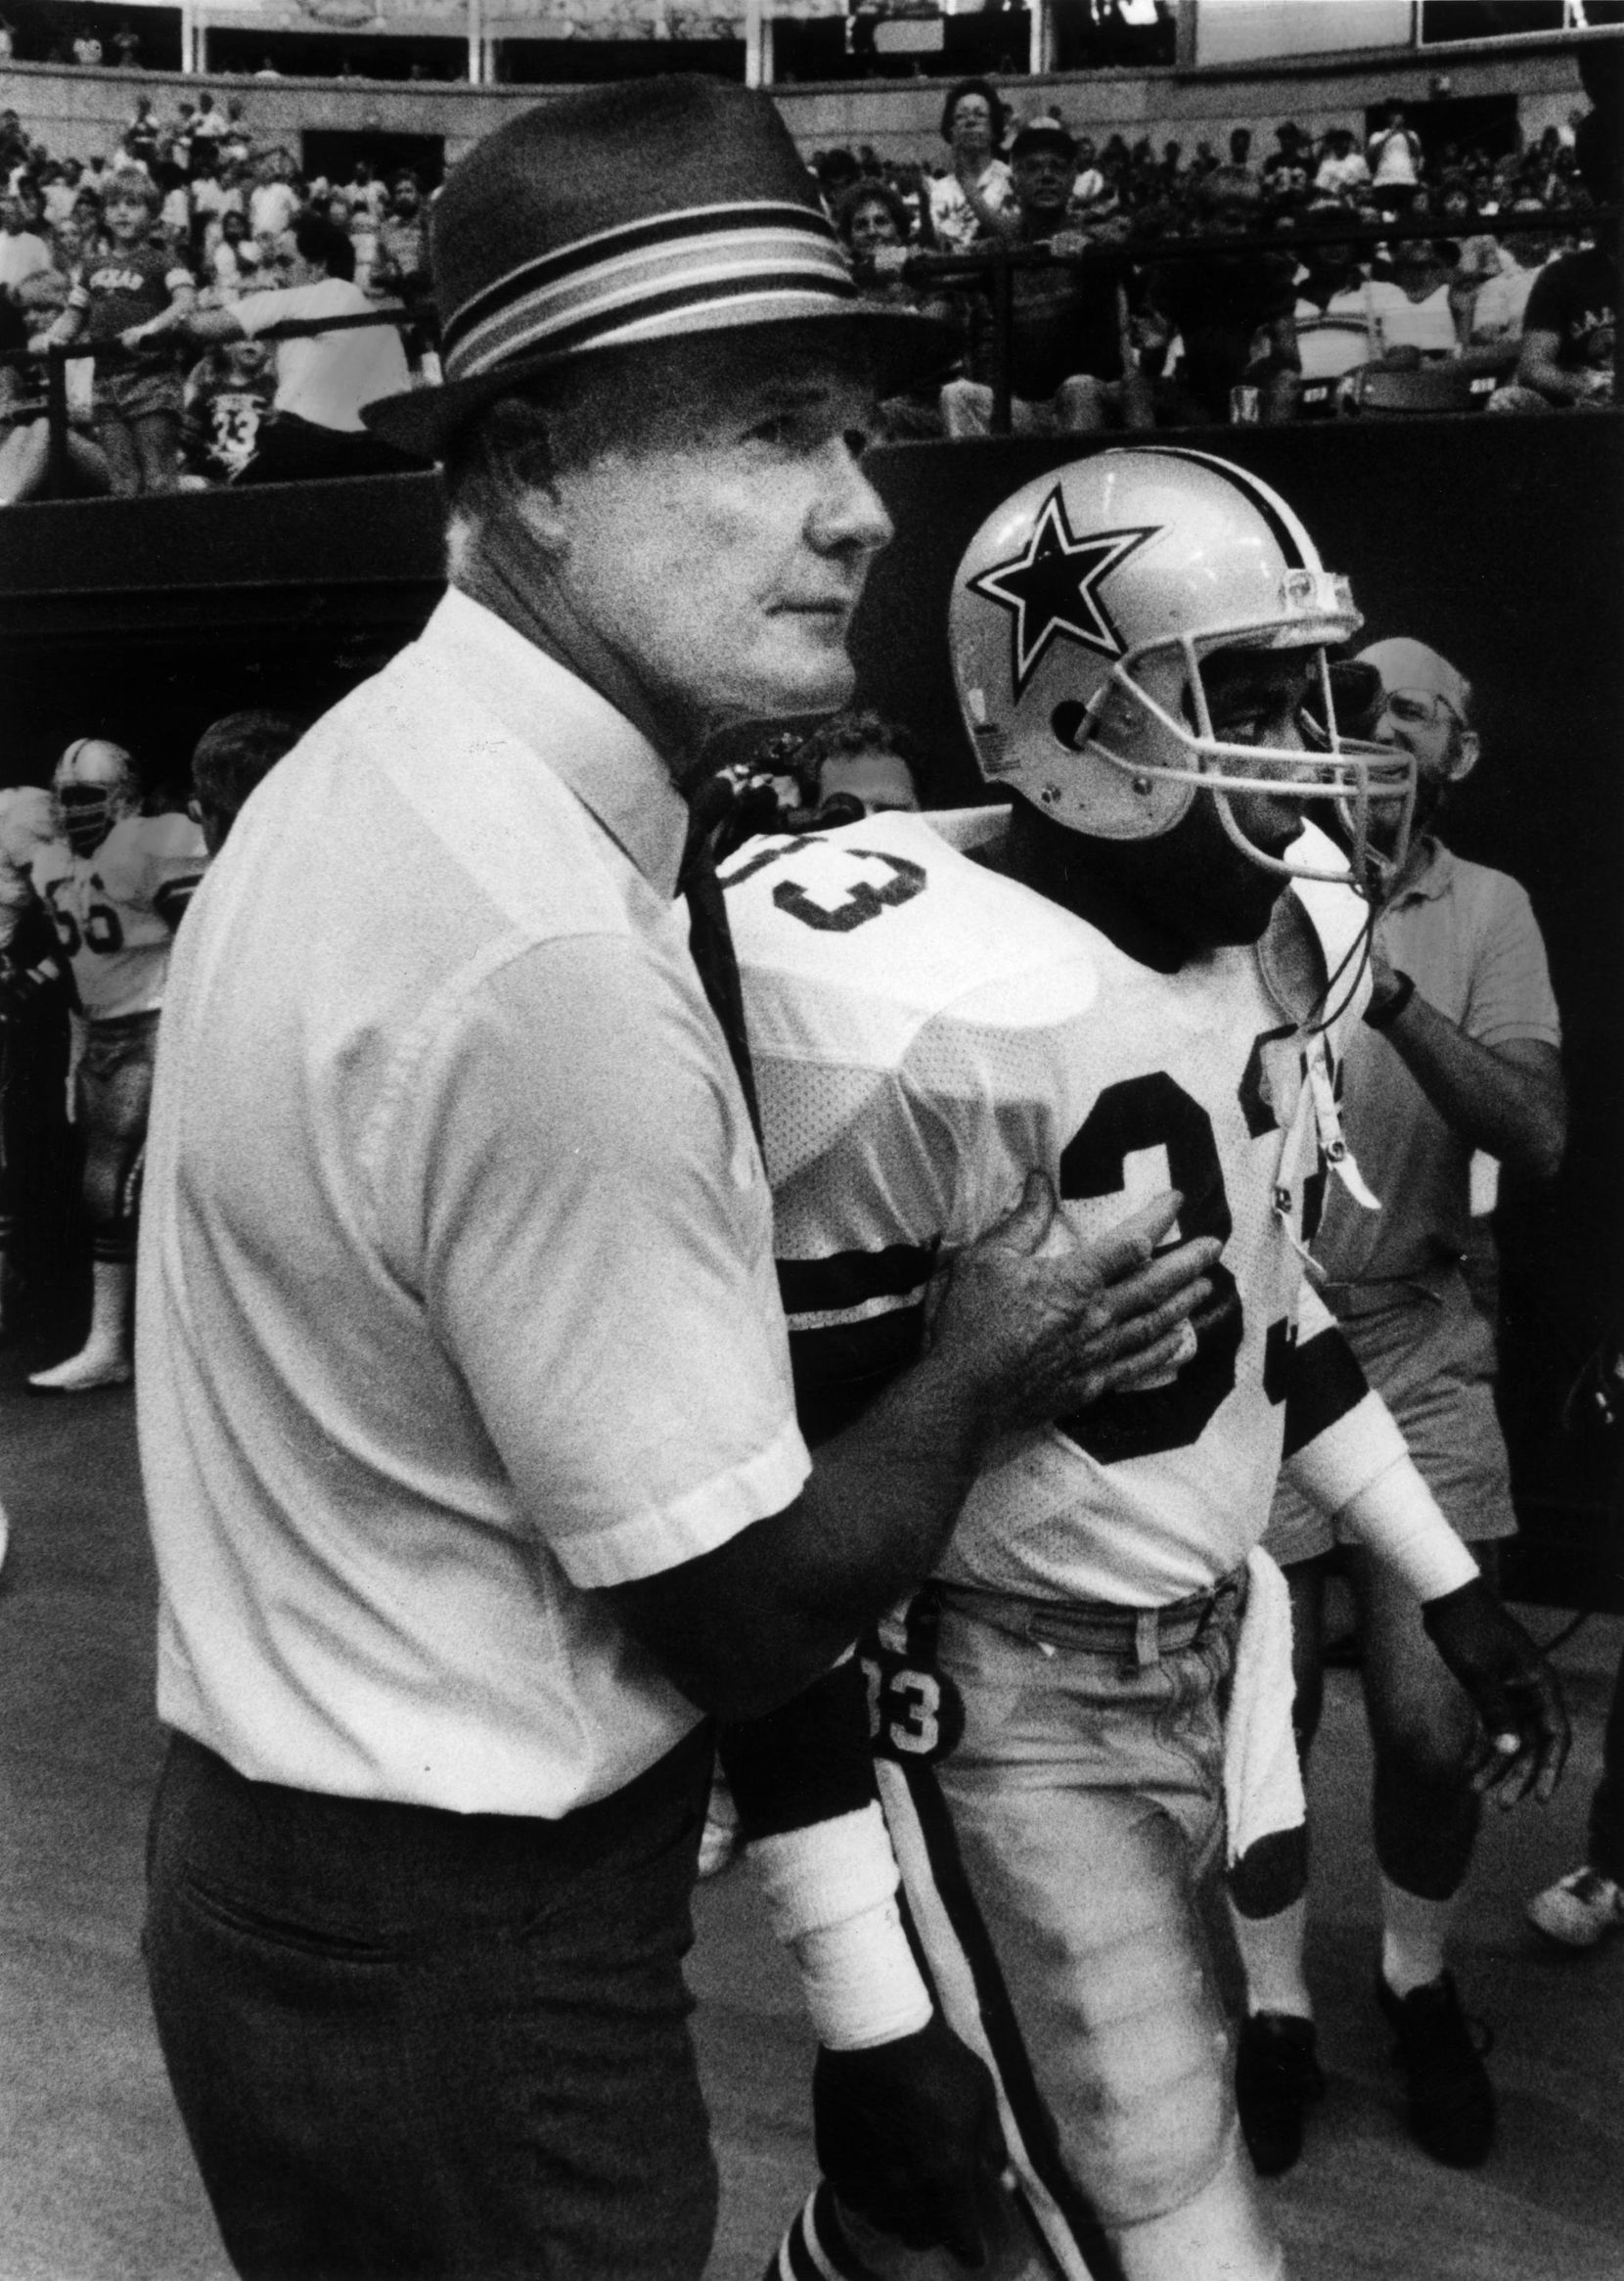 Cowboys coach Tom Landry with Tony Dorsett at player introduction at beginning of game.